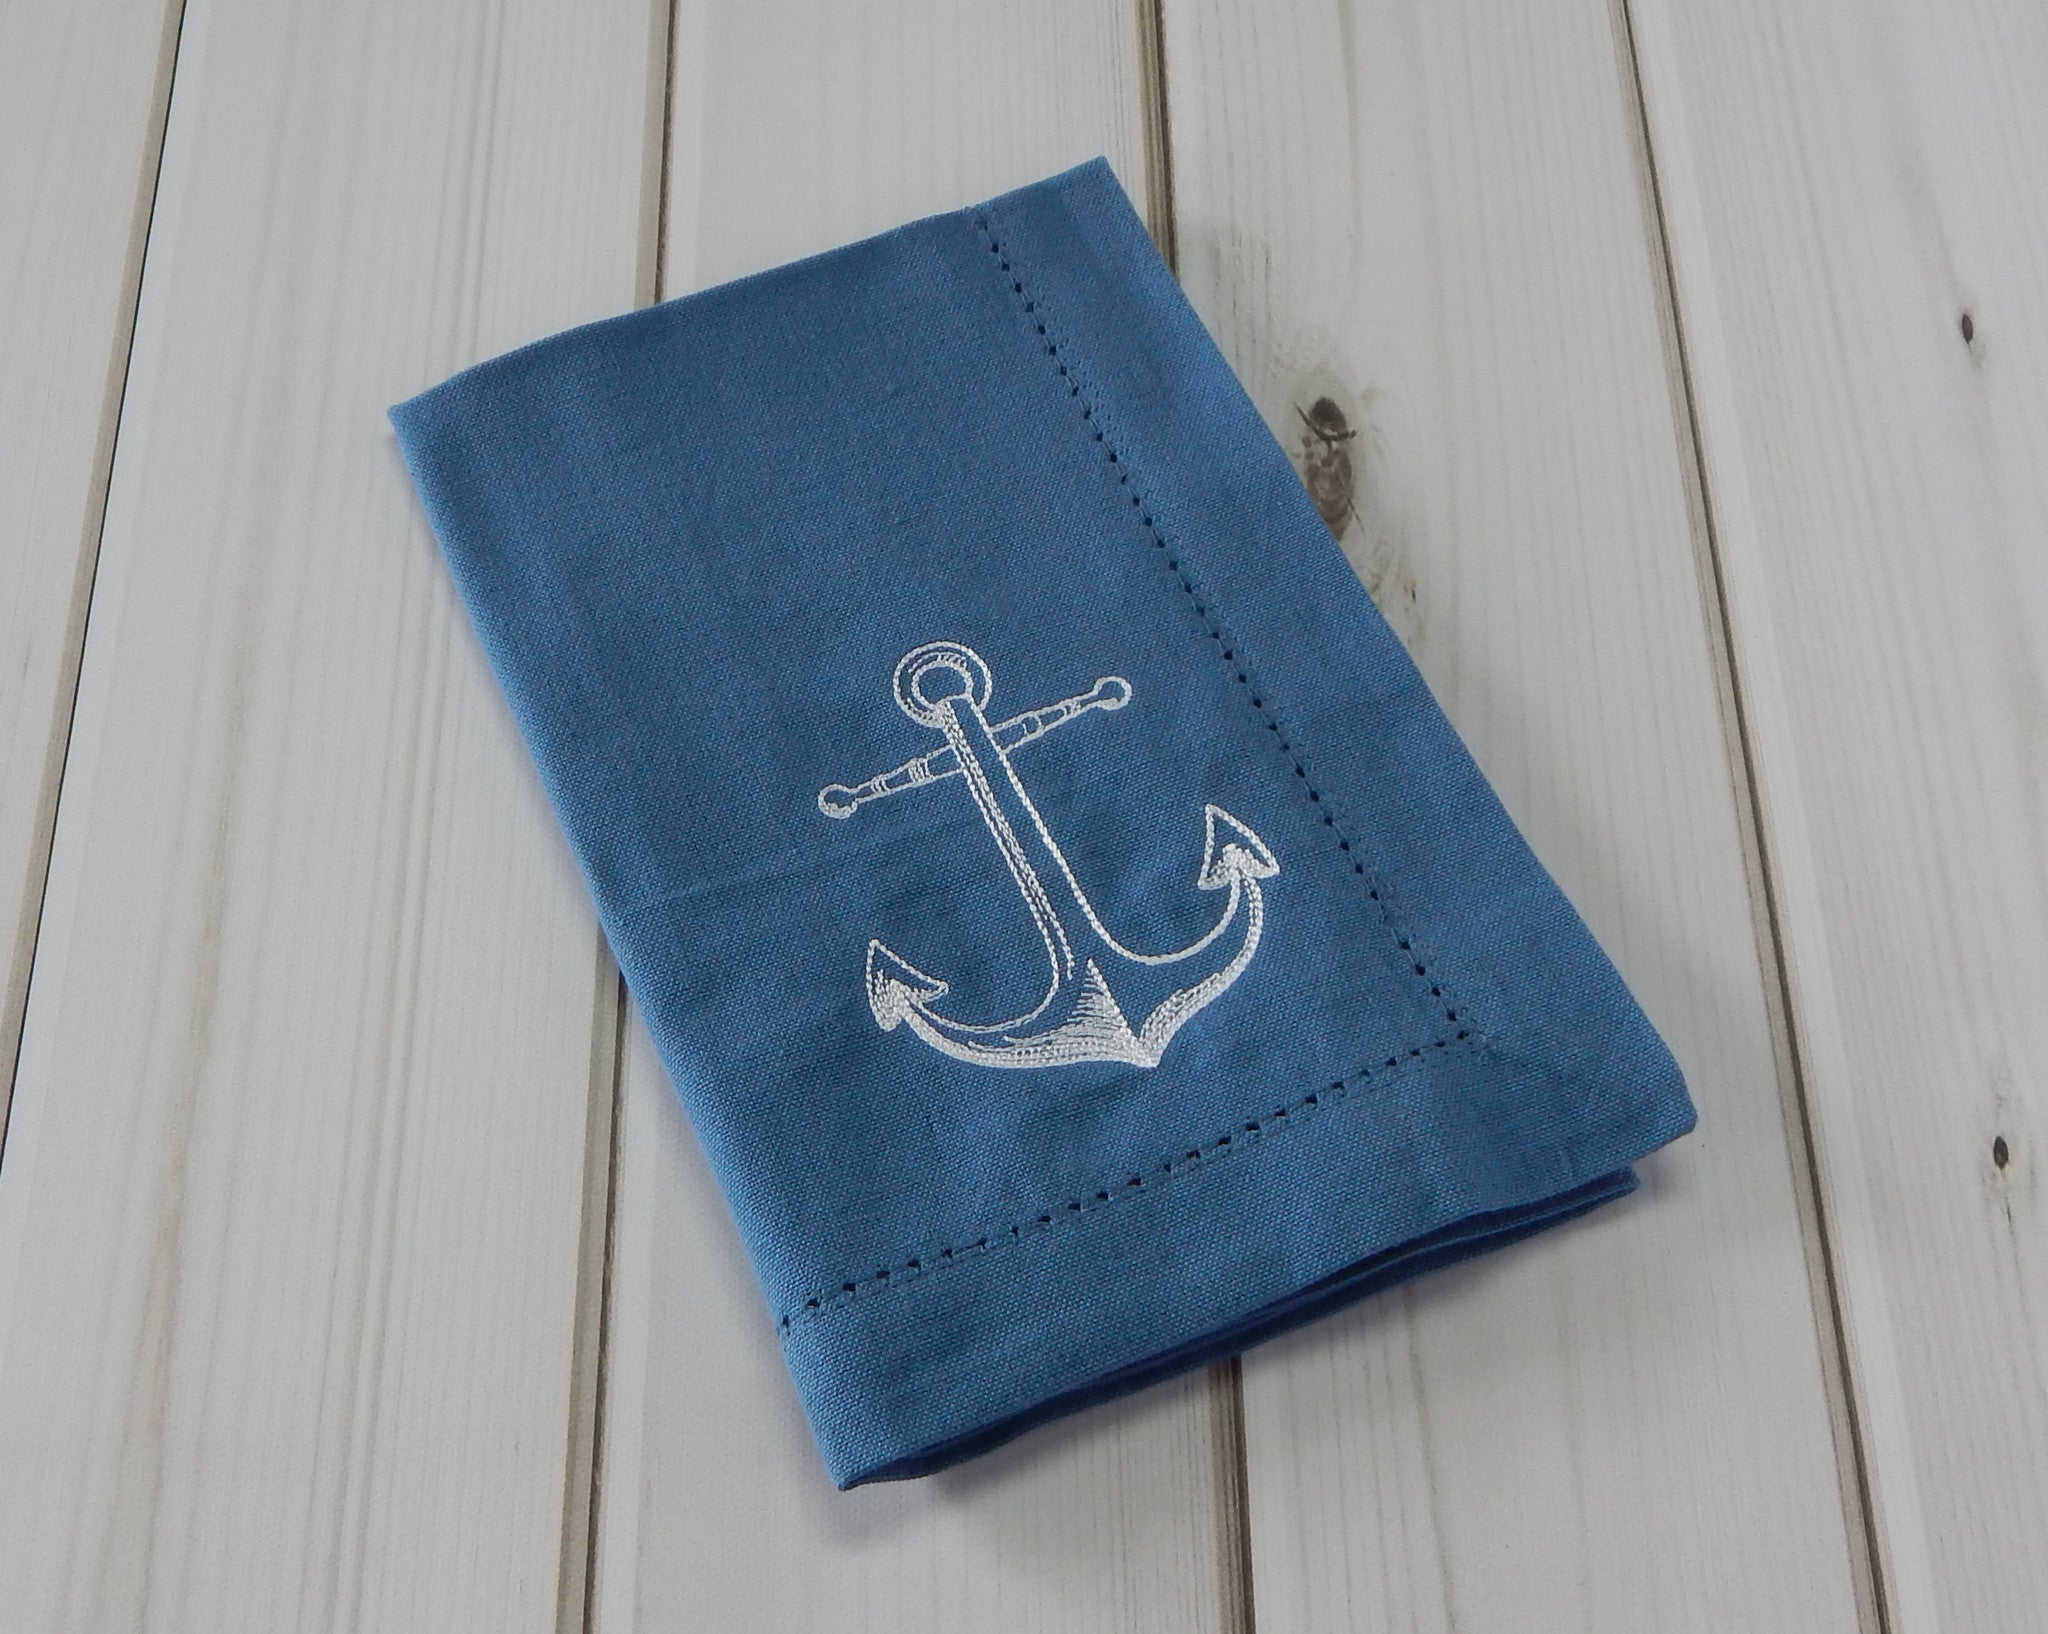 NAUTICAL - French Press Linens